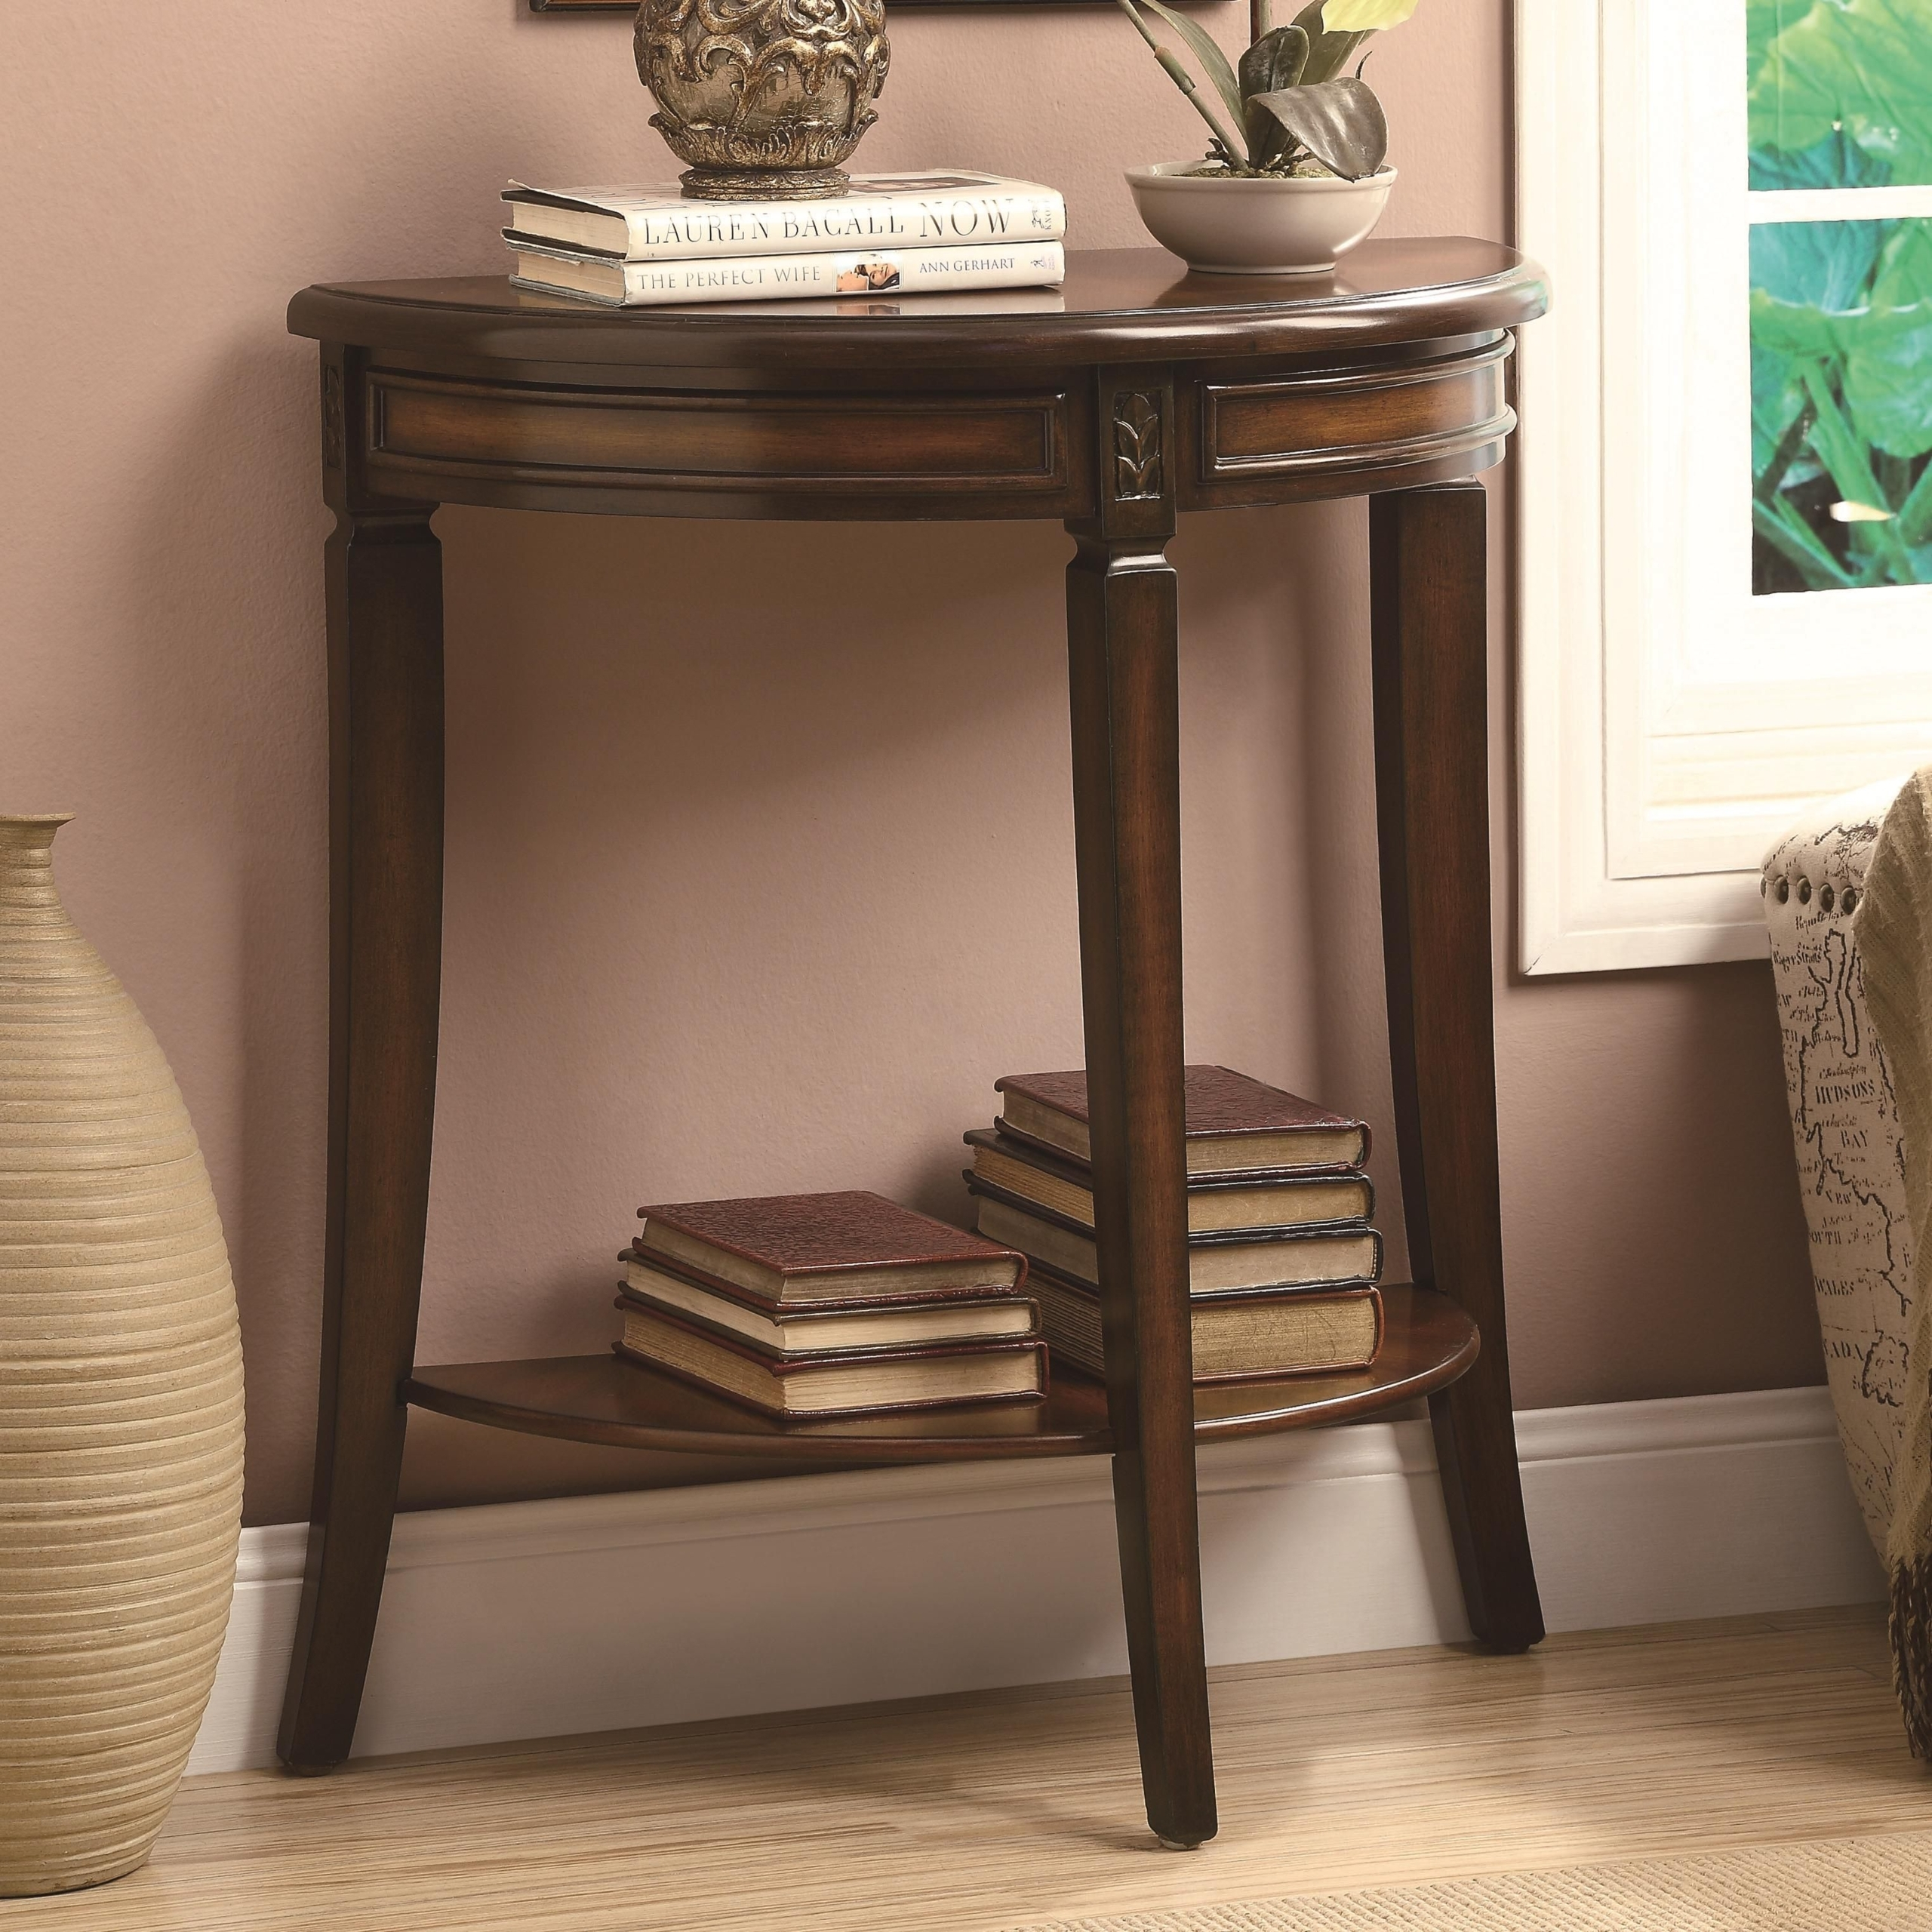 White Resin Folding Table, Small Console Tables For Entryway Ideas On Foter